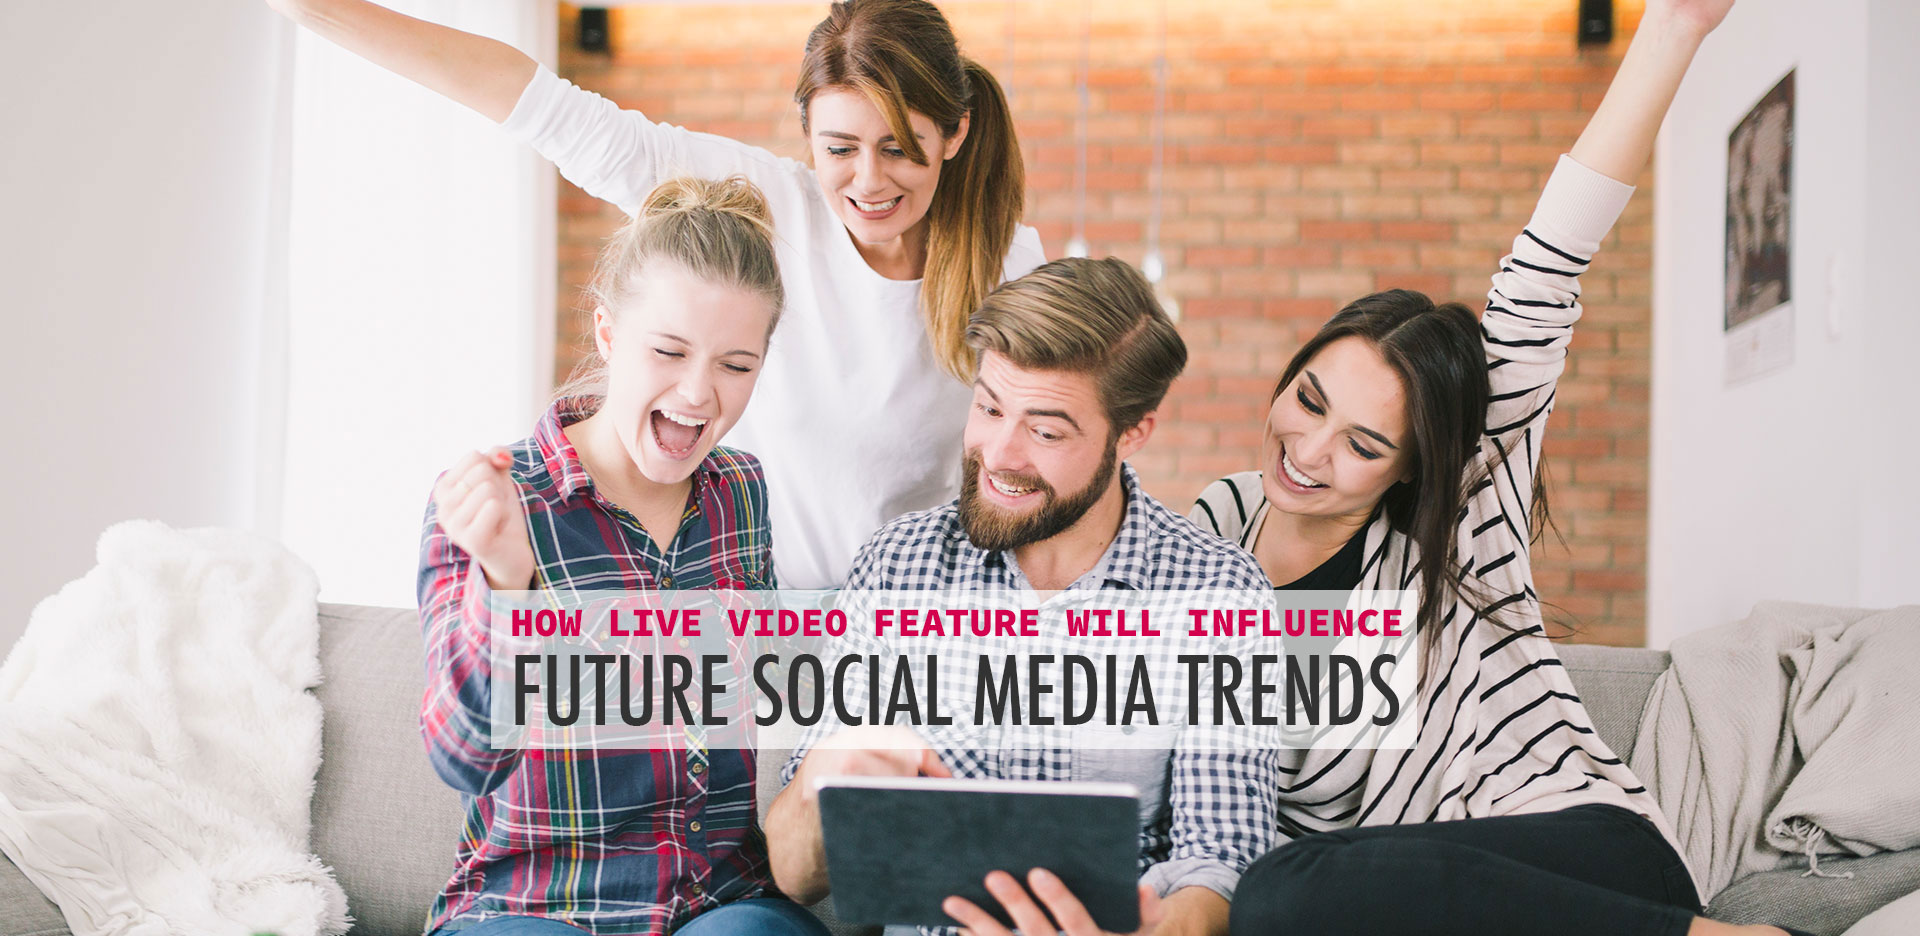 How-Live-Video-Feature-Will-Influence-Future-Social-Media-Trends